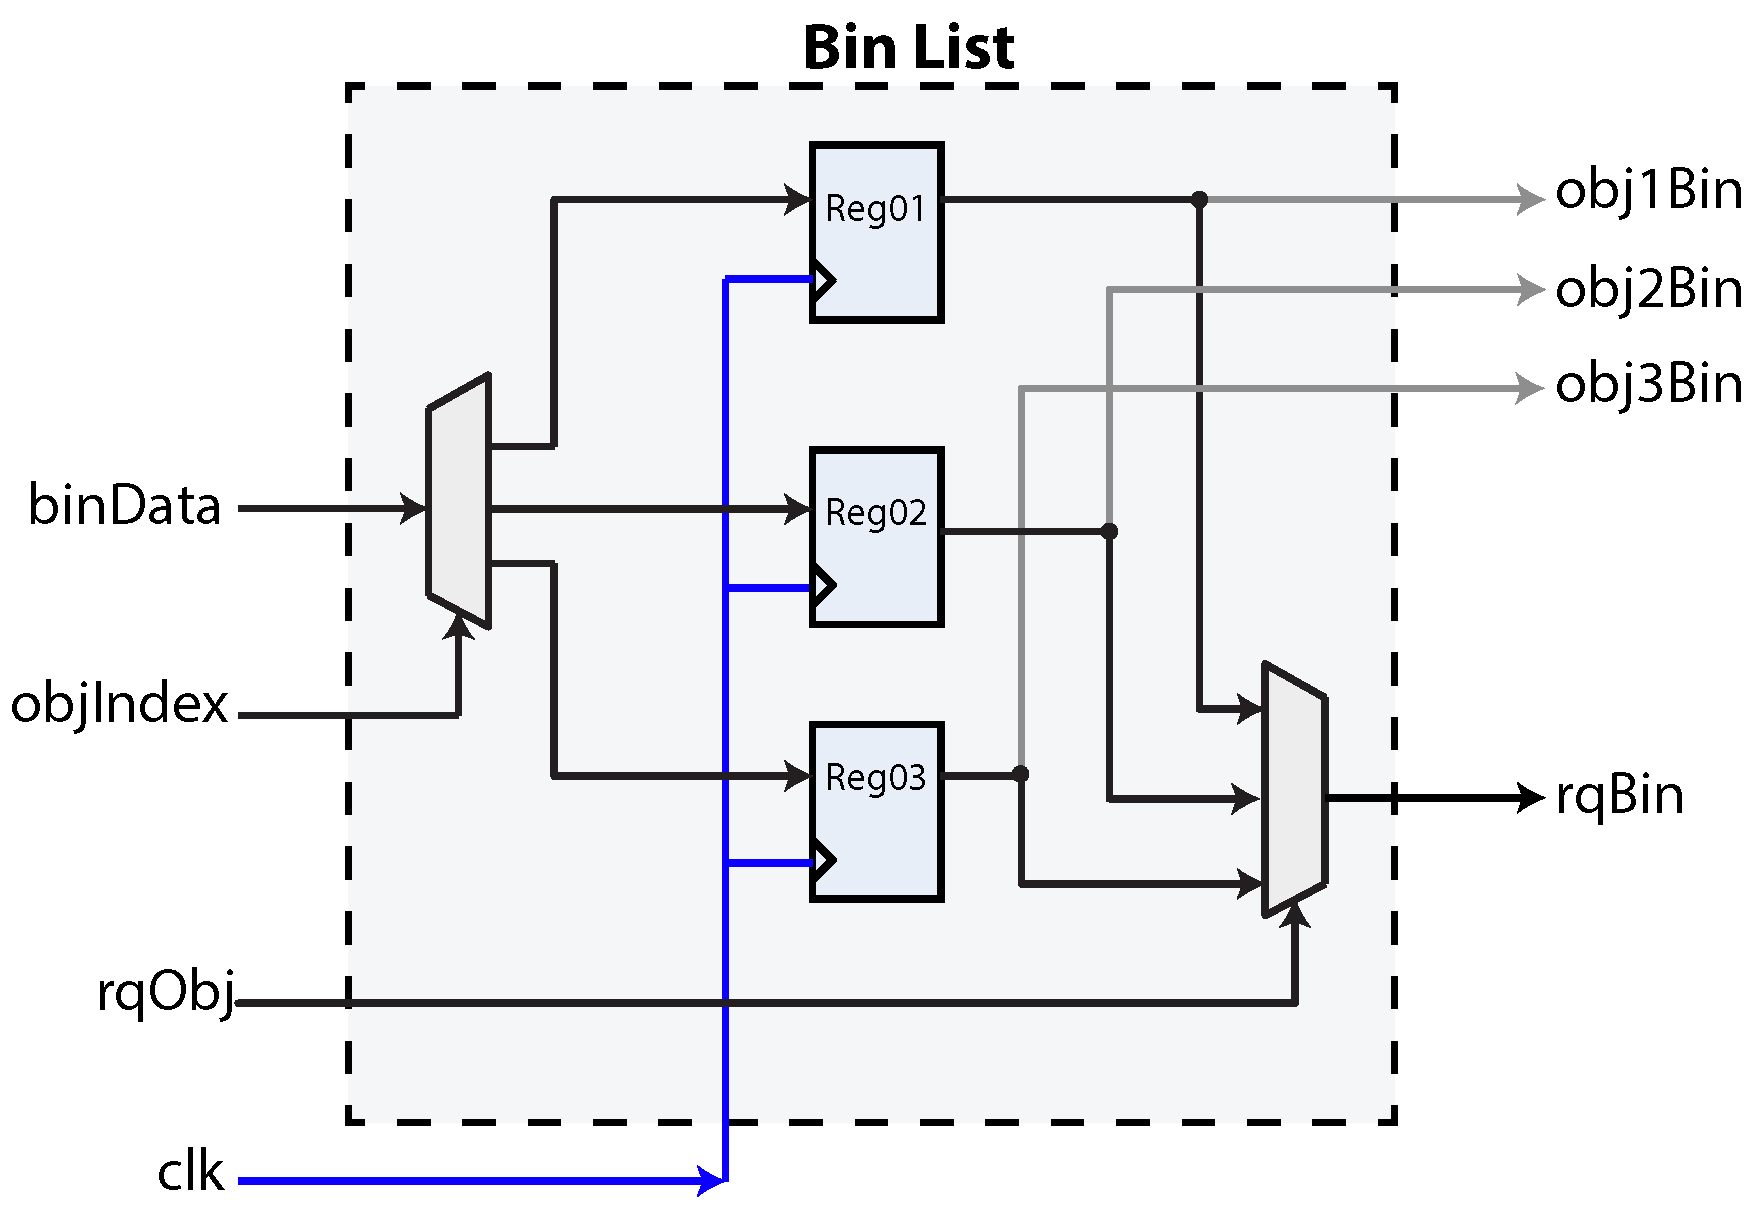 Sensors Free Full Text A Linked List Based Algorithm For Blob Circuit Board Background Raster Version Abstract 3d Cpu 16 00782 G013 1024